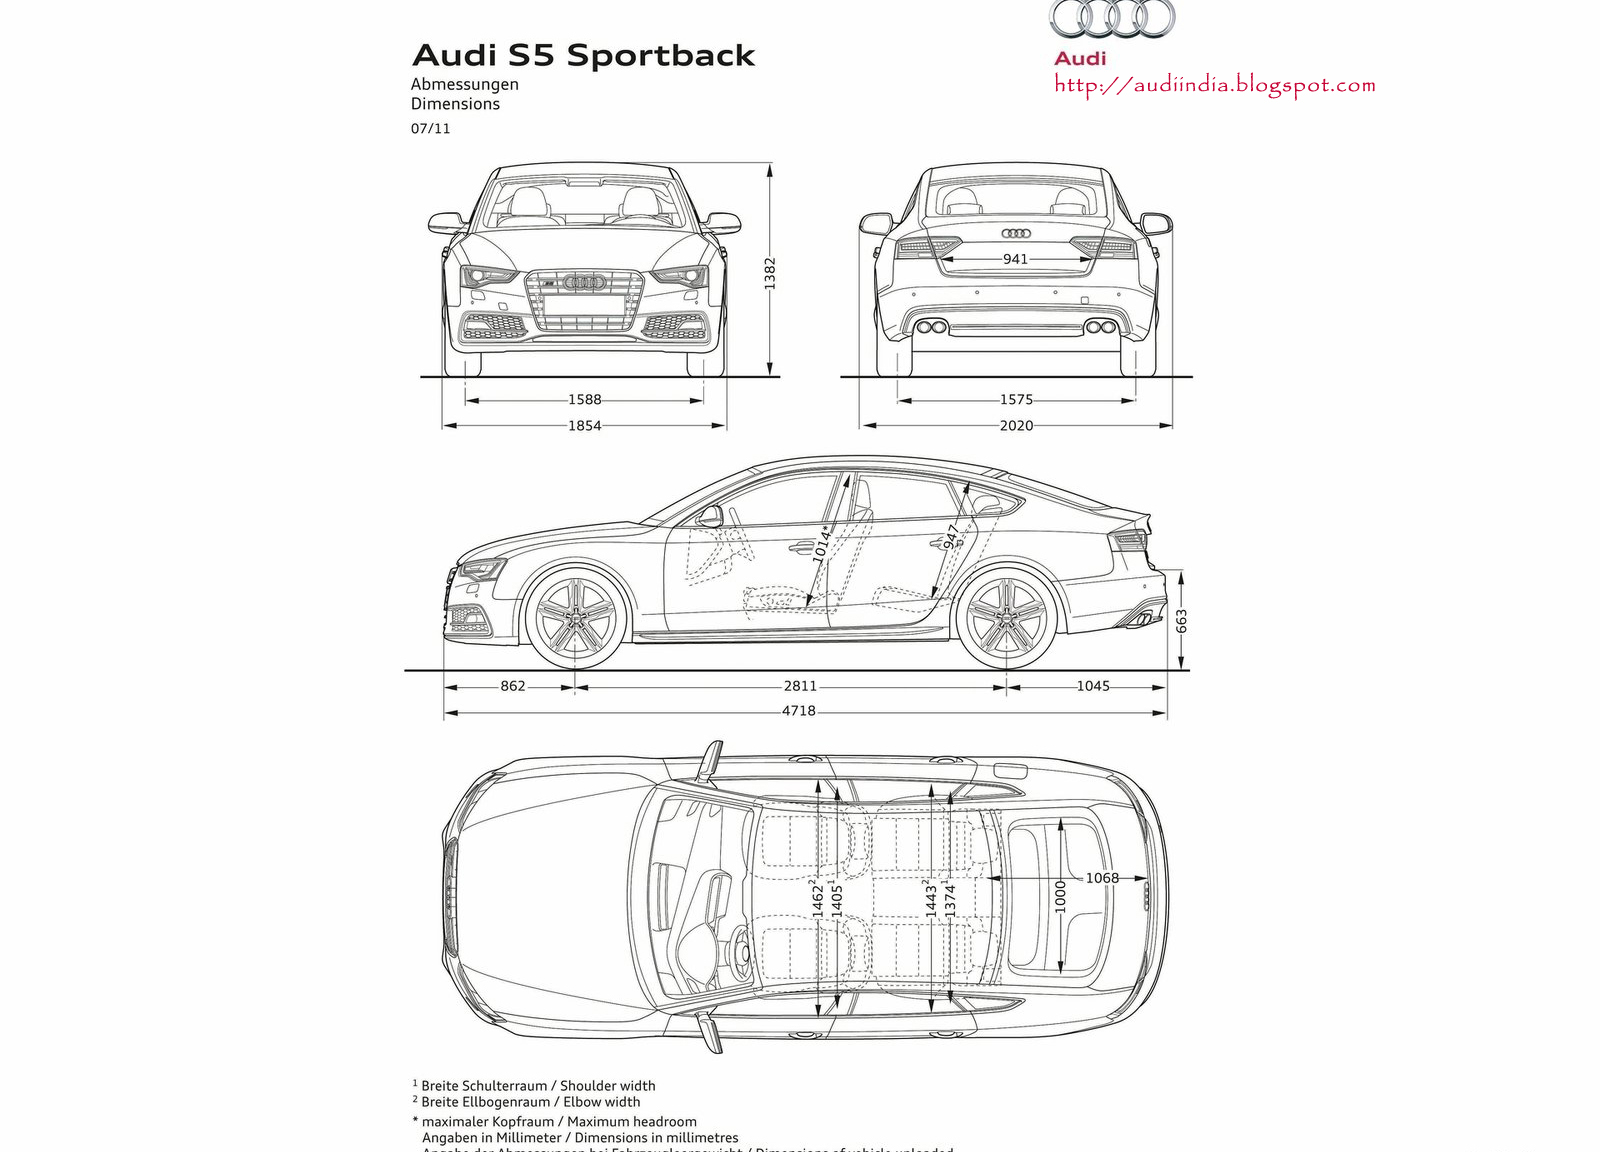 The World of Audi: January 2012